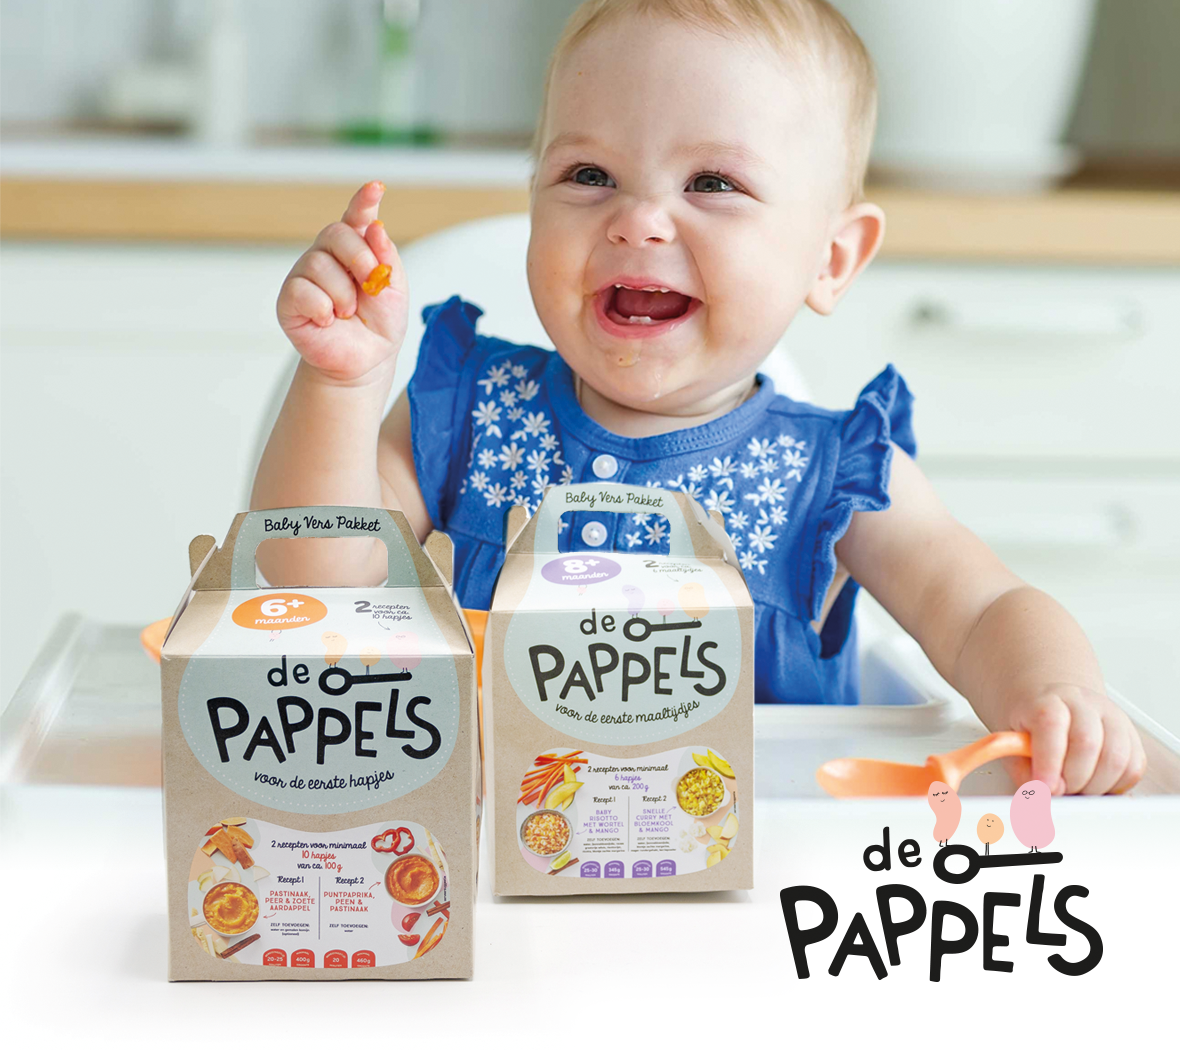 The Greenery introduces 'Pappels' - Fresh produce packages for babies